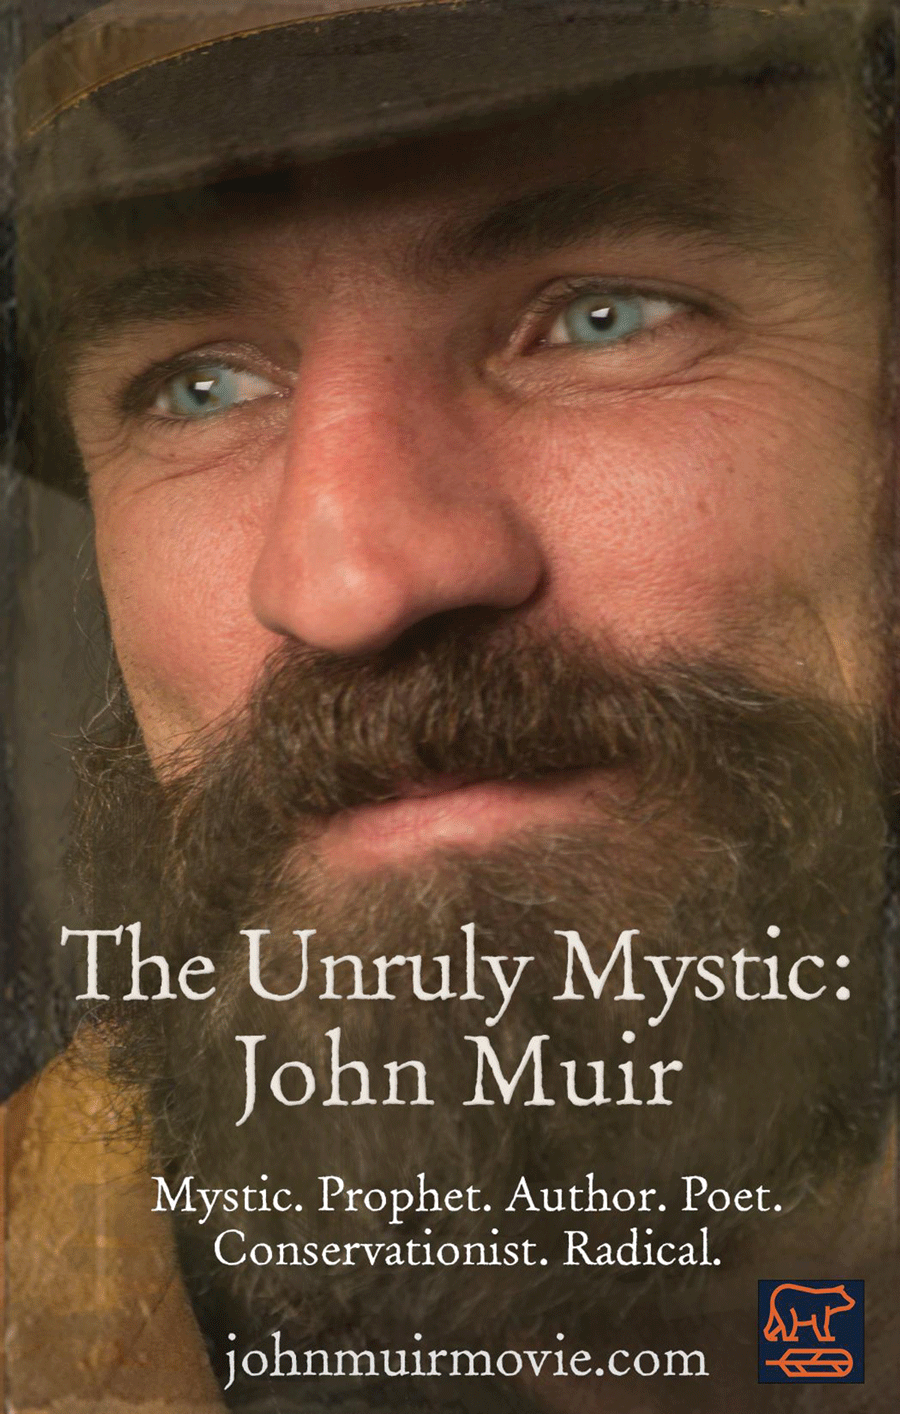 'Mystic' conjures John Muir's love for nature